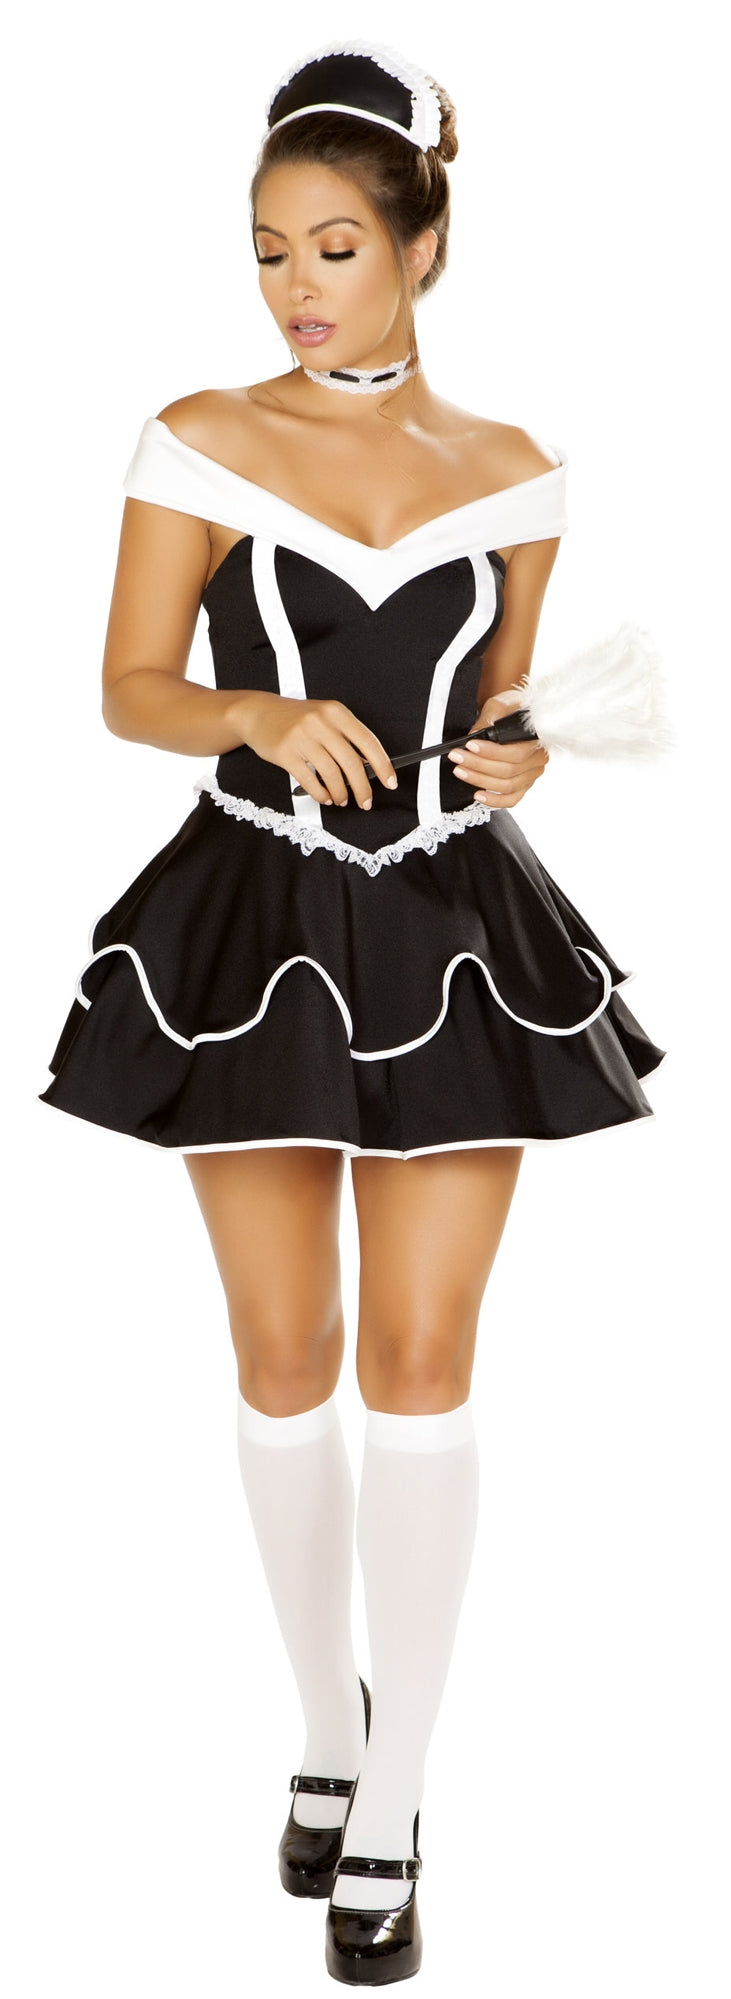 RM-4886 Chamber Maid Costume front